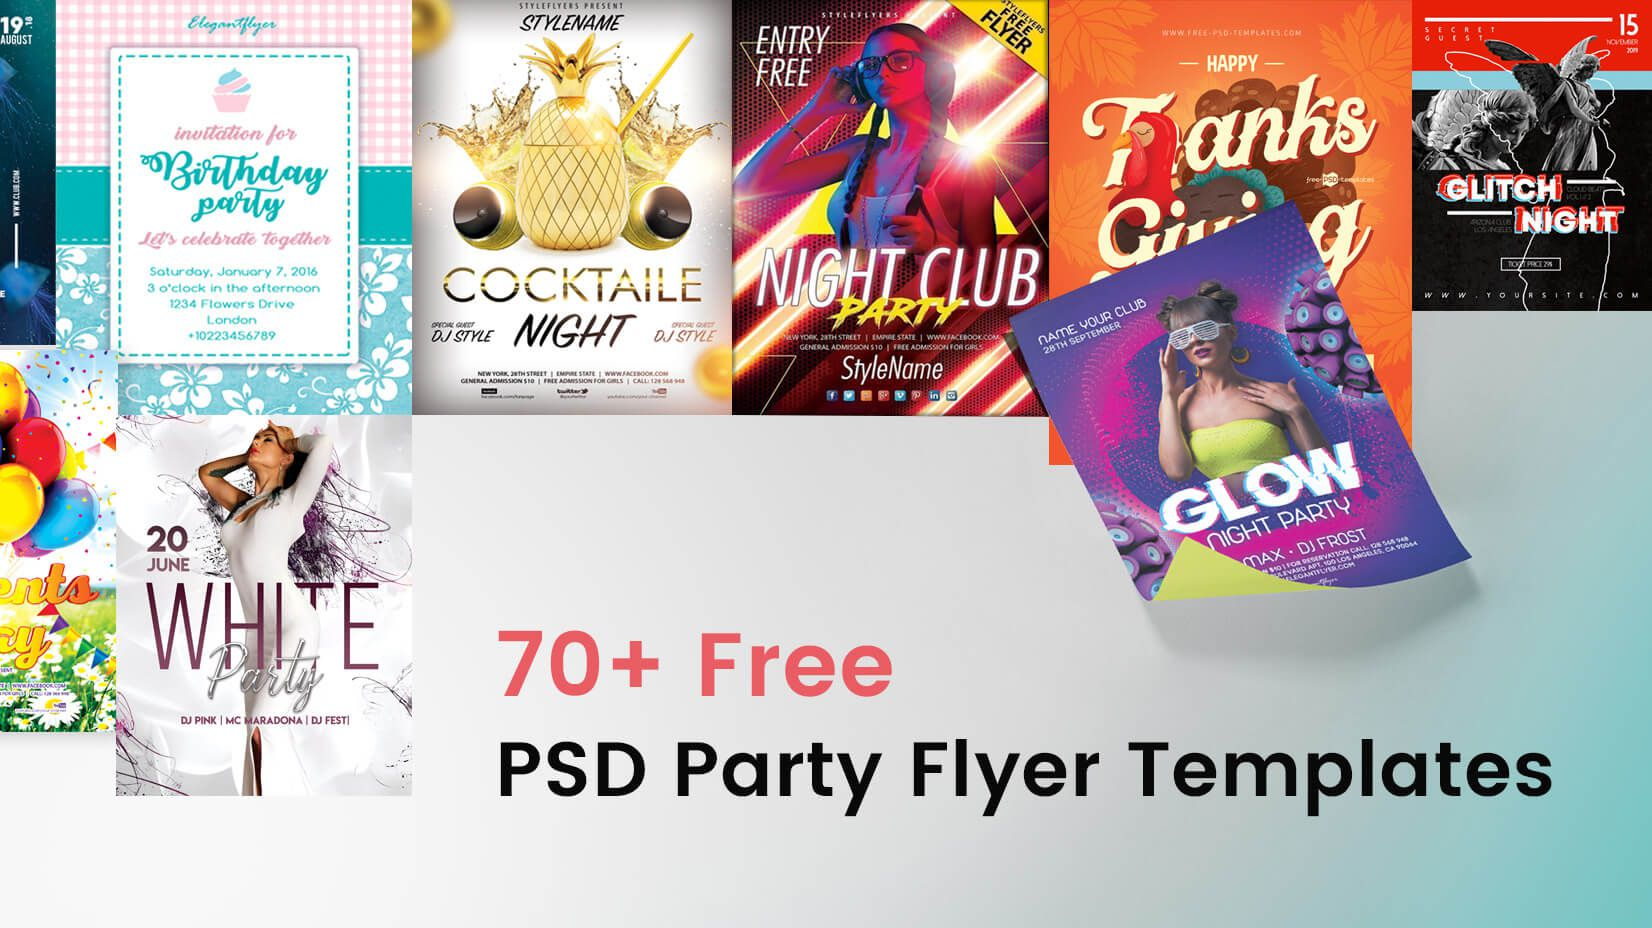 005 Remarkable Free Party Flyer Template For Photoshop High Def  Pool Psd DownloadFull